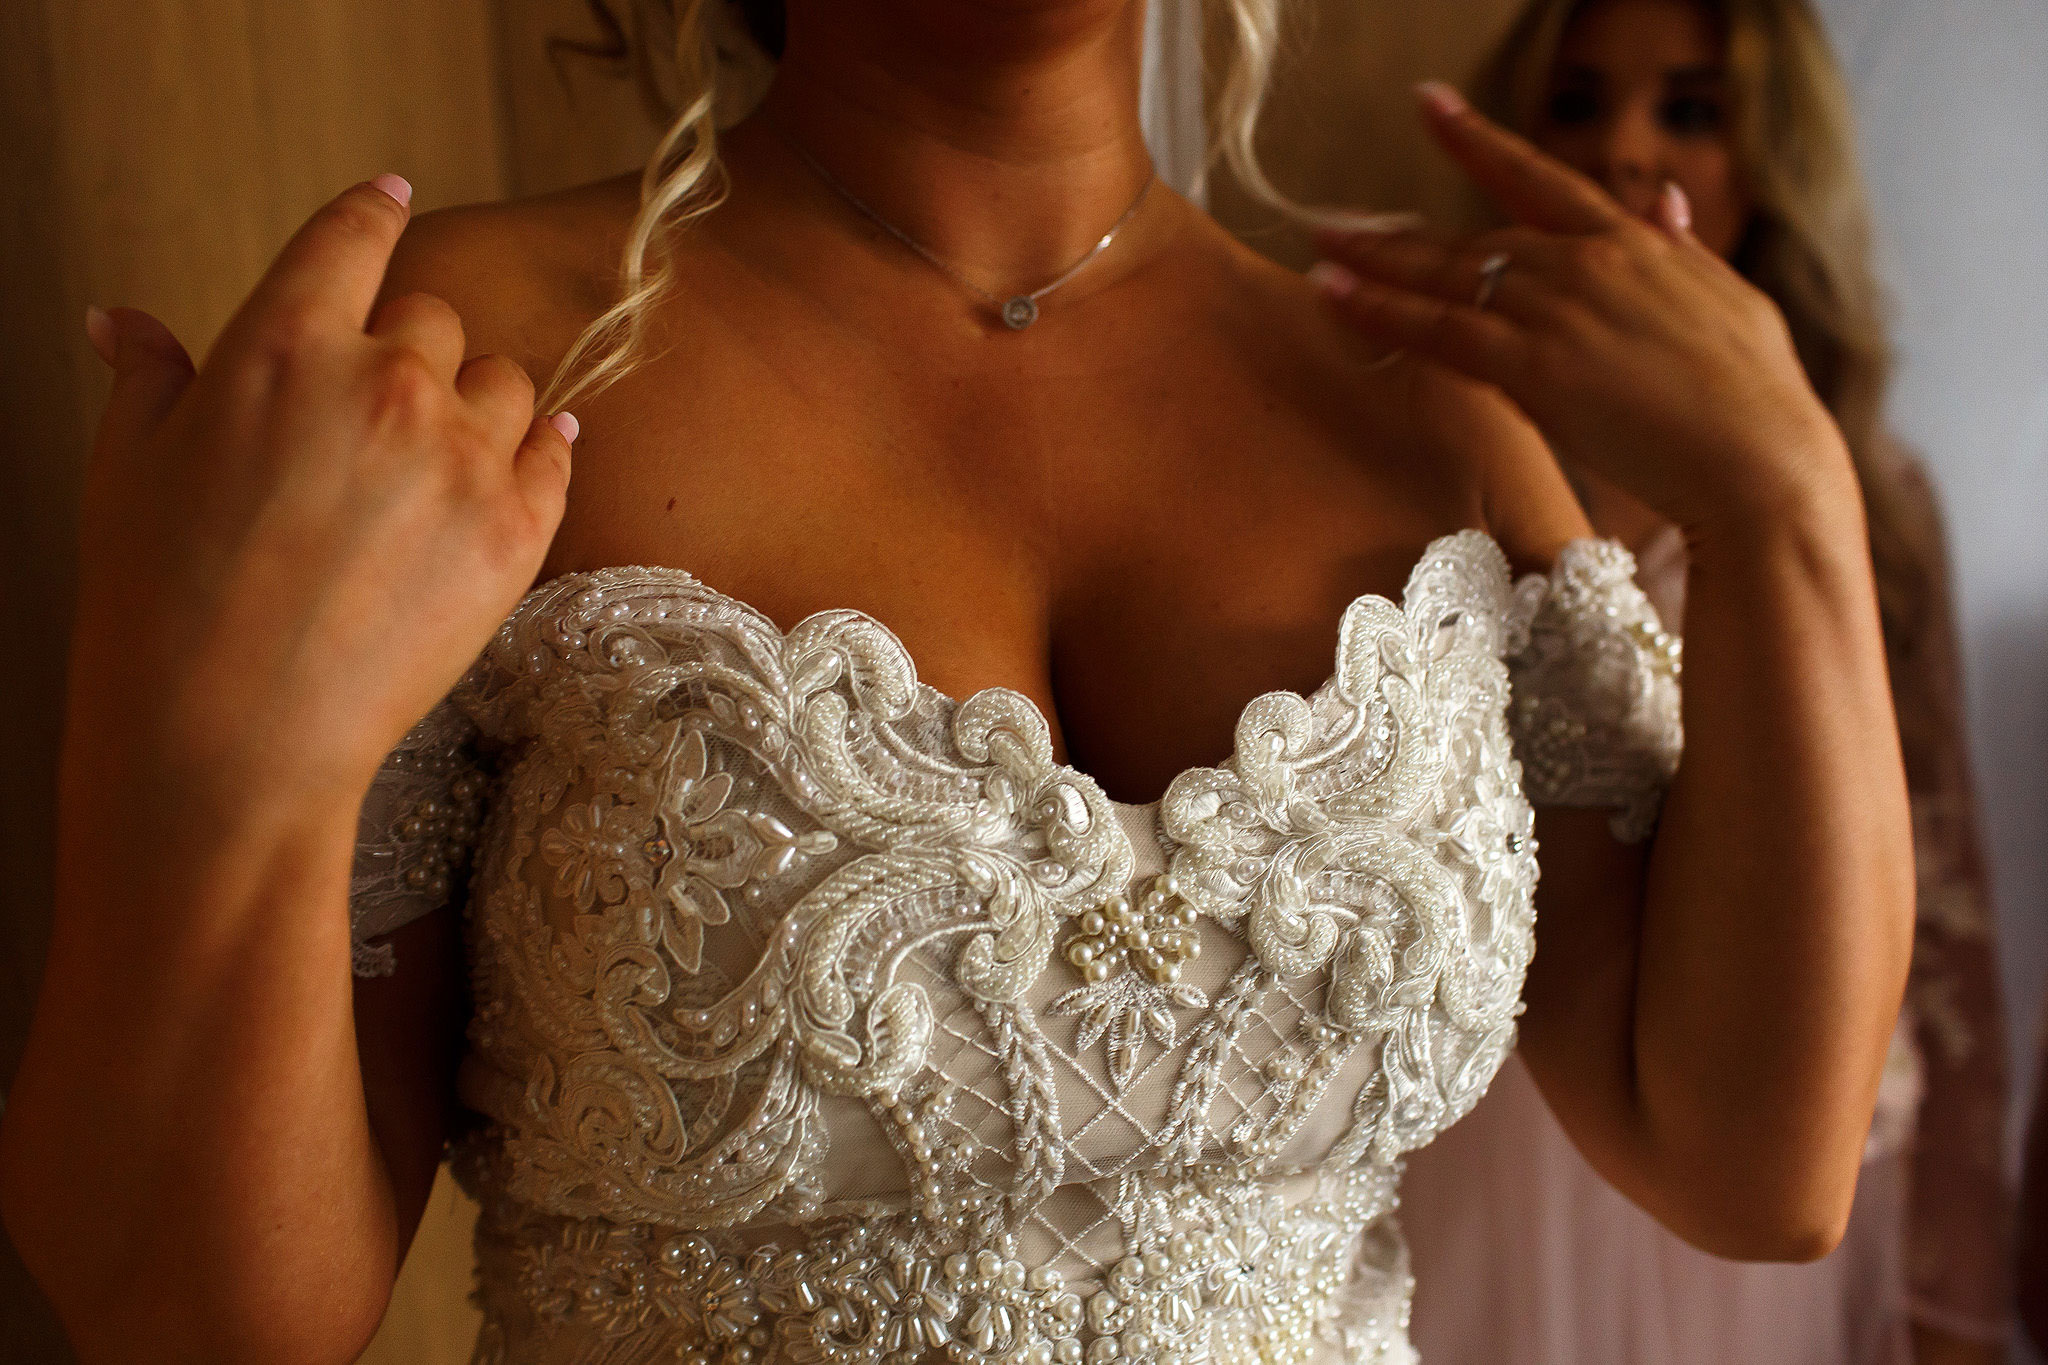 Bride wearing strapless wedding dress with beading, touching her blonde hair with hands